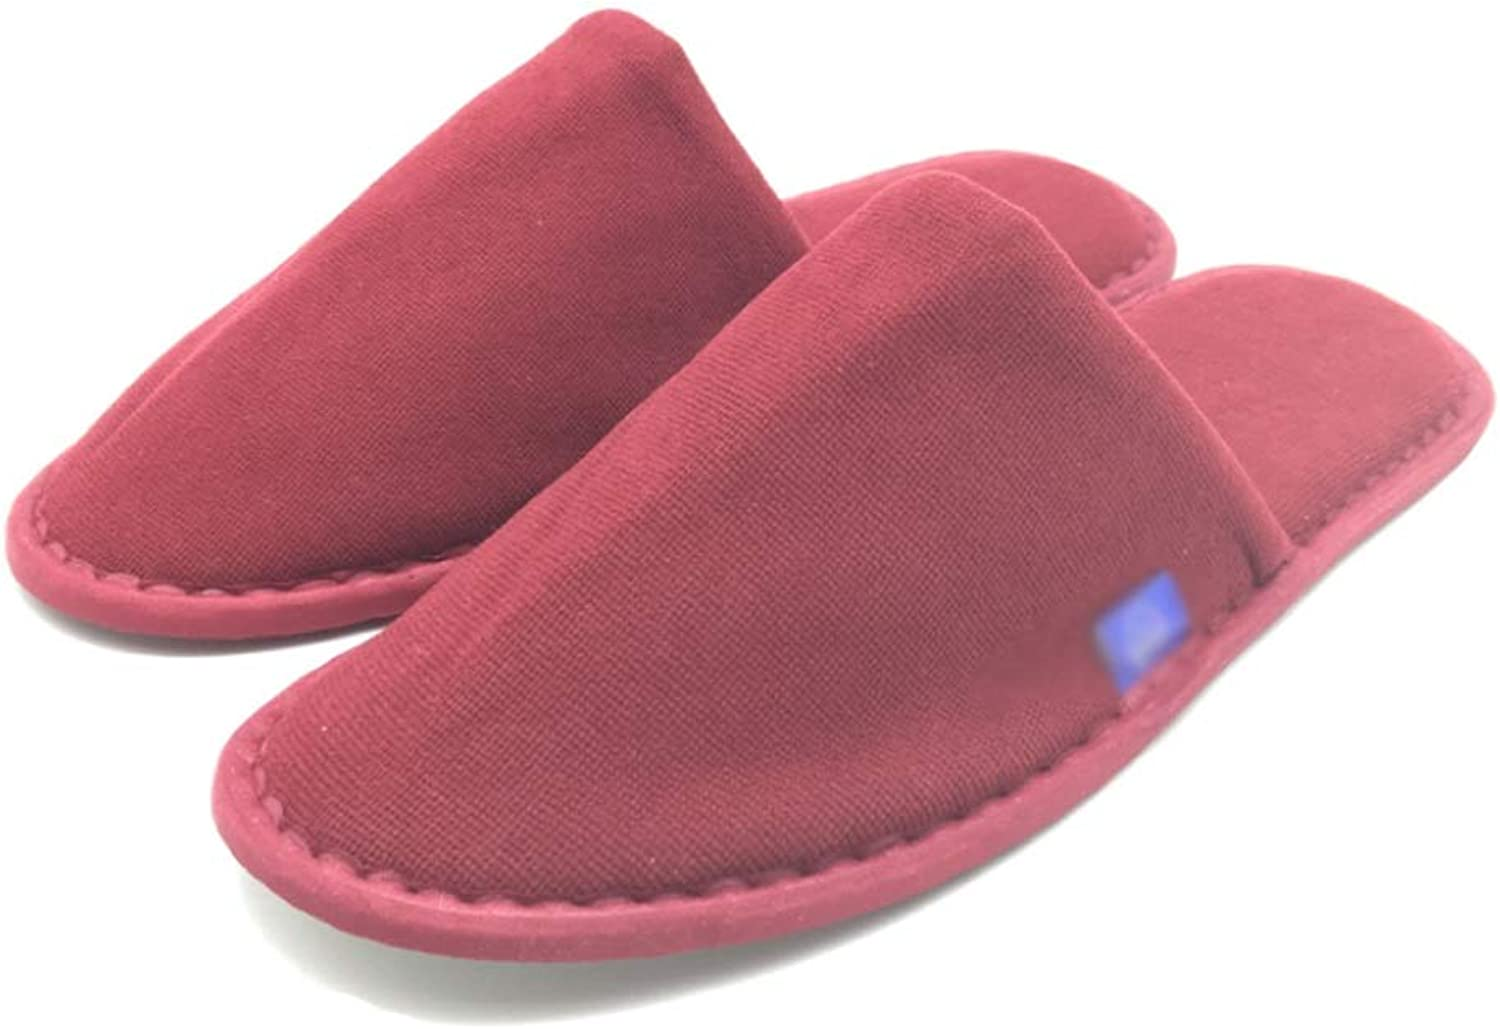 DISPOSABLE SLIPPER 10 Pairs, SPA SLIPPER, Unisex Non-slip Comfortable For Home, Hotel Or Commercial Use Red